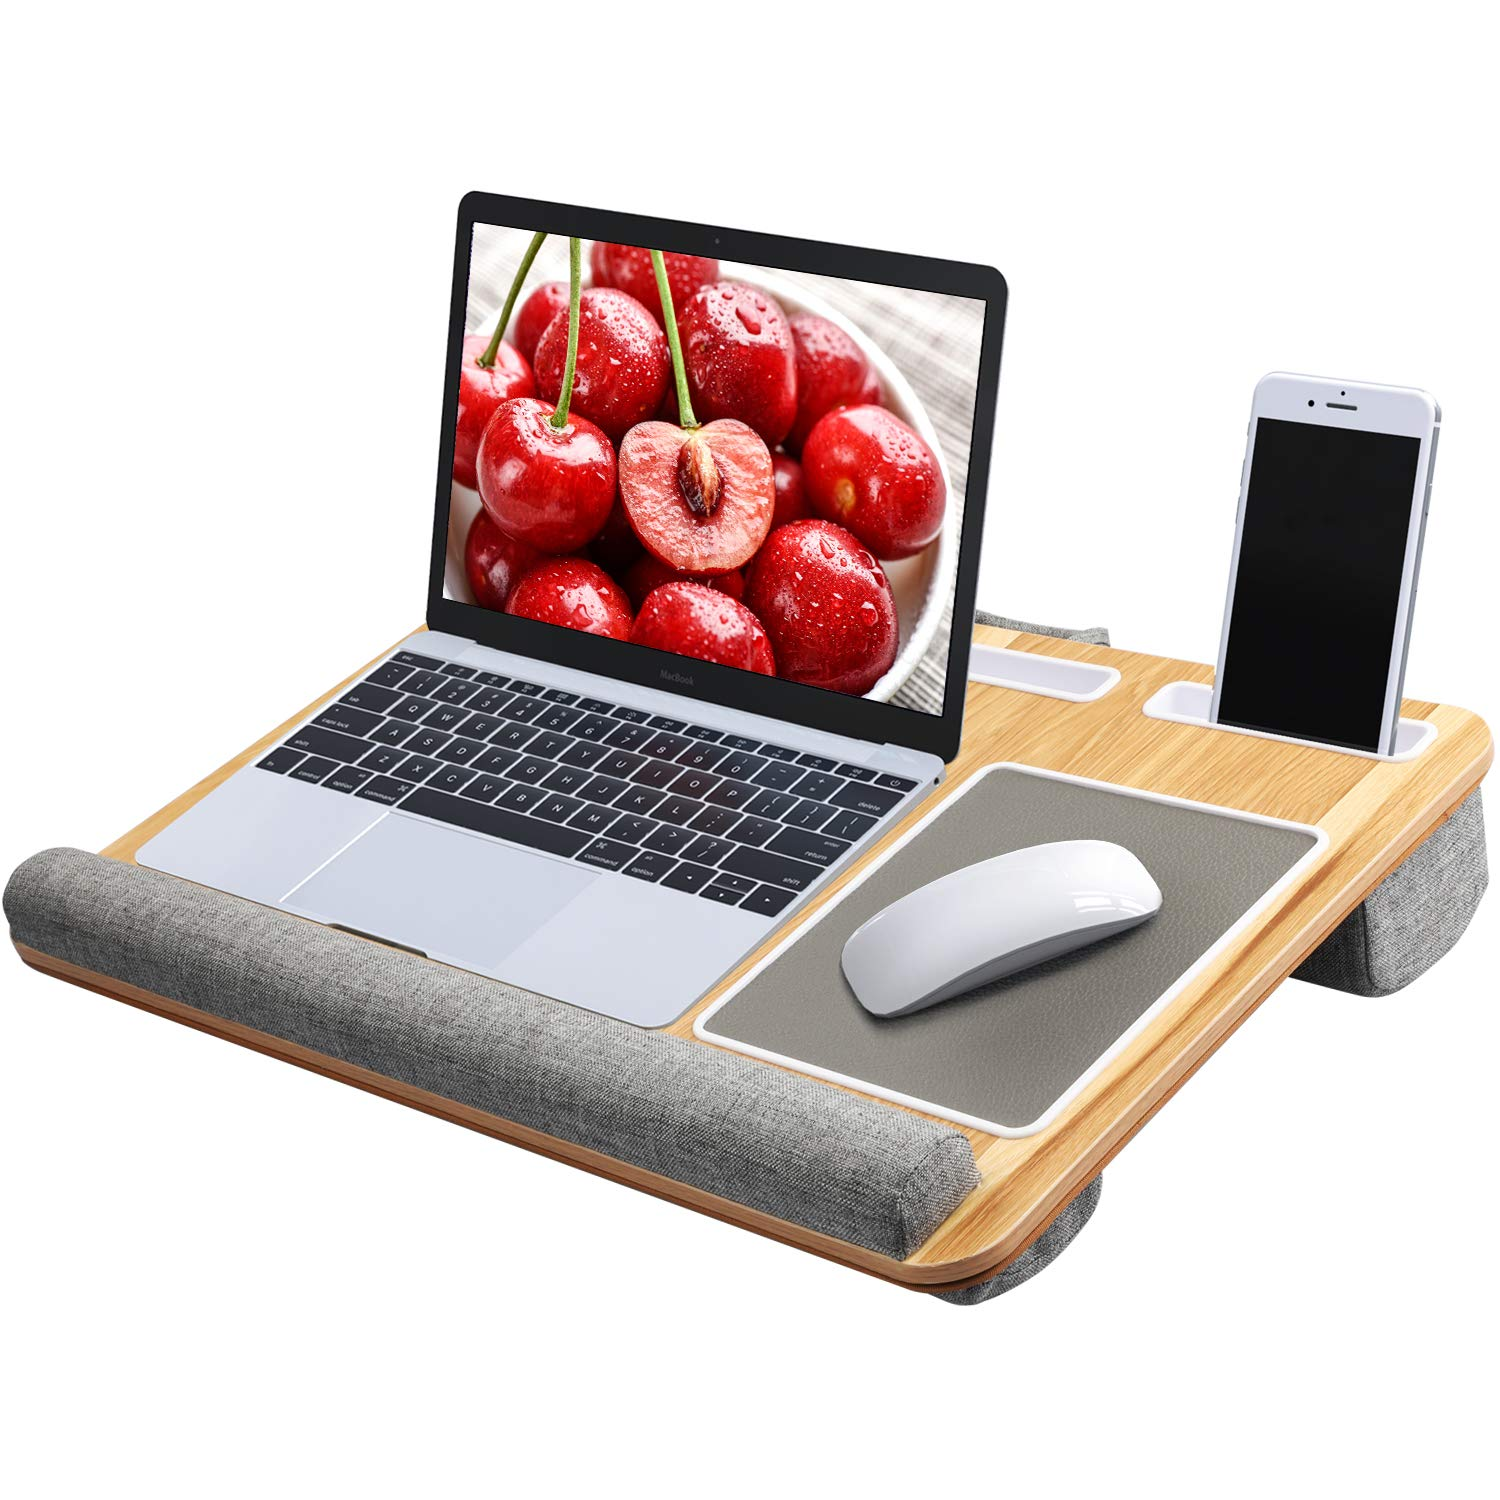 Lap Desk - Fits up to 17 inches Laptop Desk, Built in Mouse Pad & Wrist Pad for Notebook, MacBook, Tablet, Laptop Stand with Tablet, Pen & Phone Holder (Wood Grain) by HUANUO